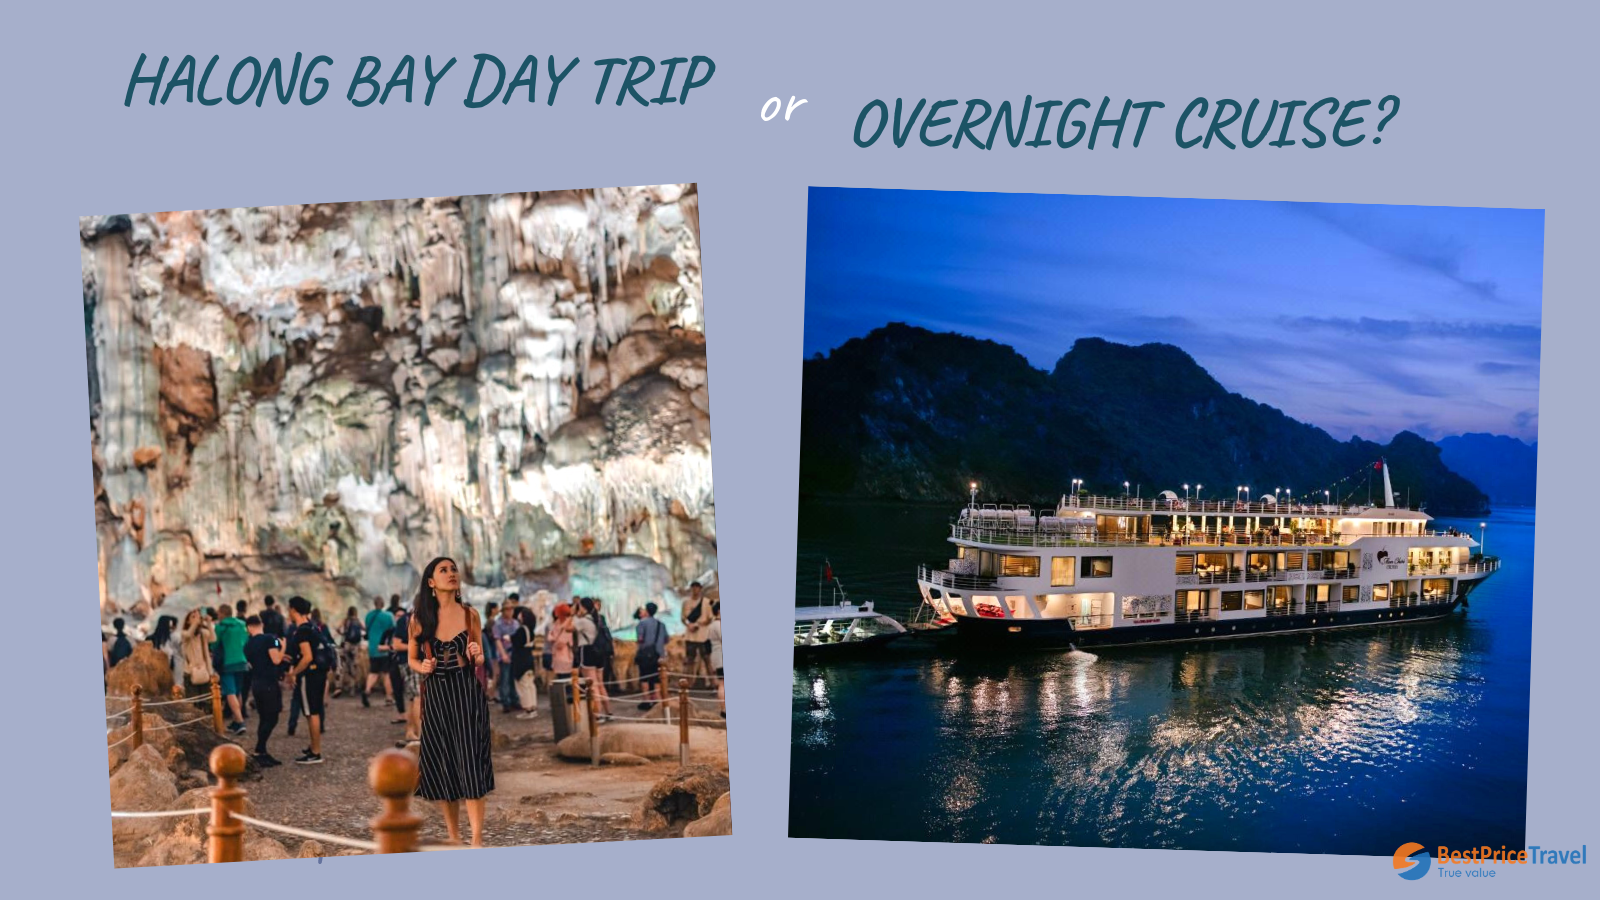 Halong Bay day trip or overnight cruise